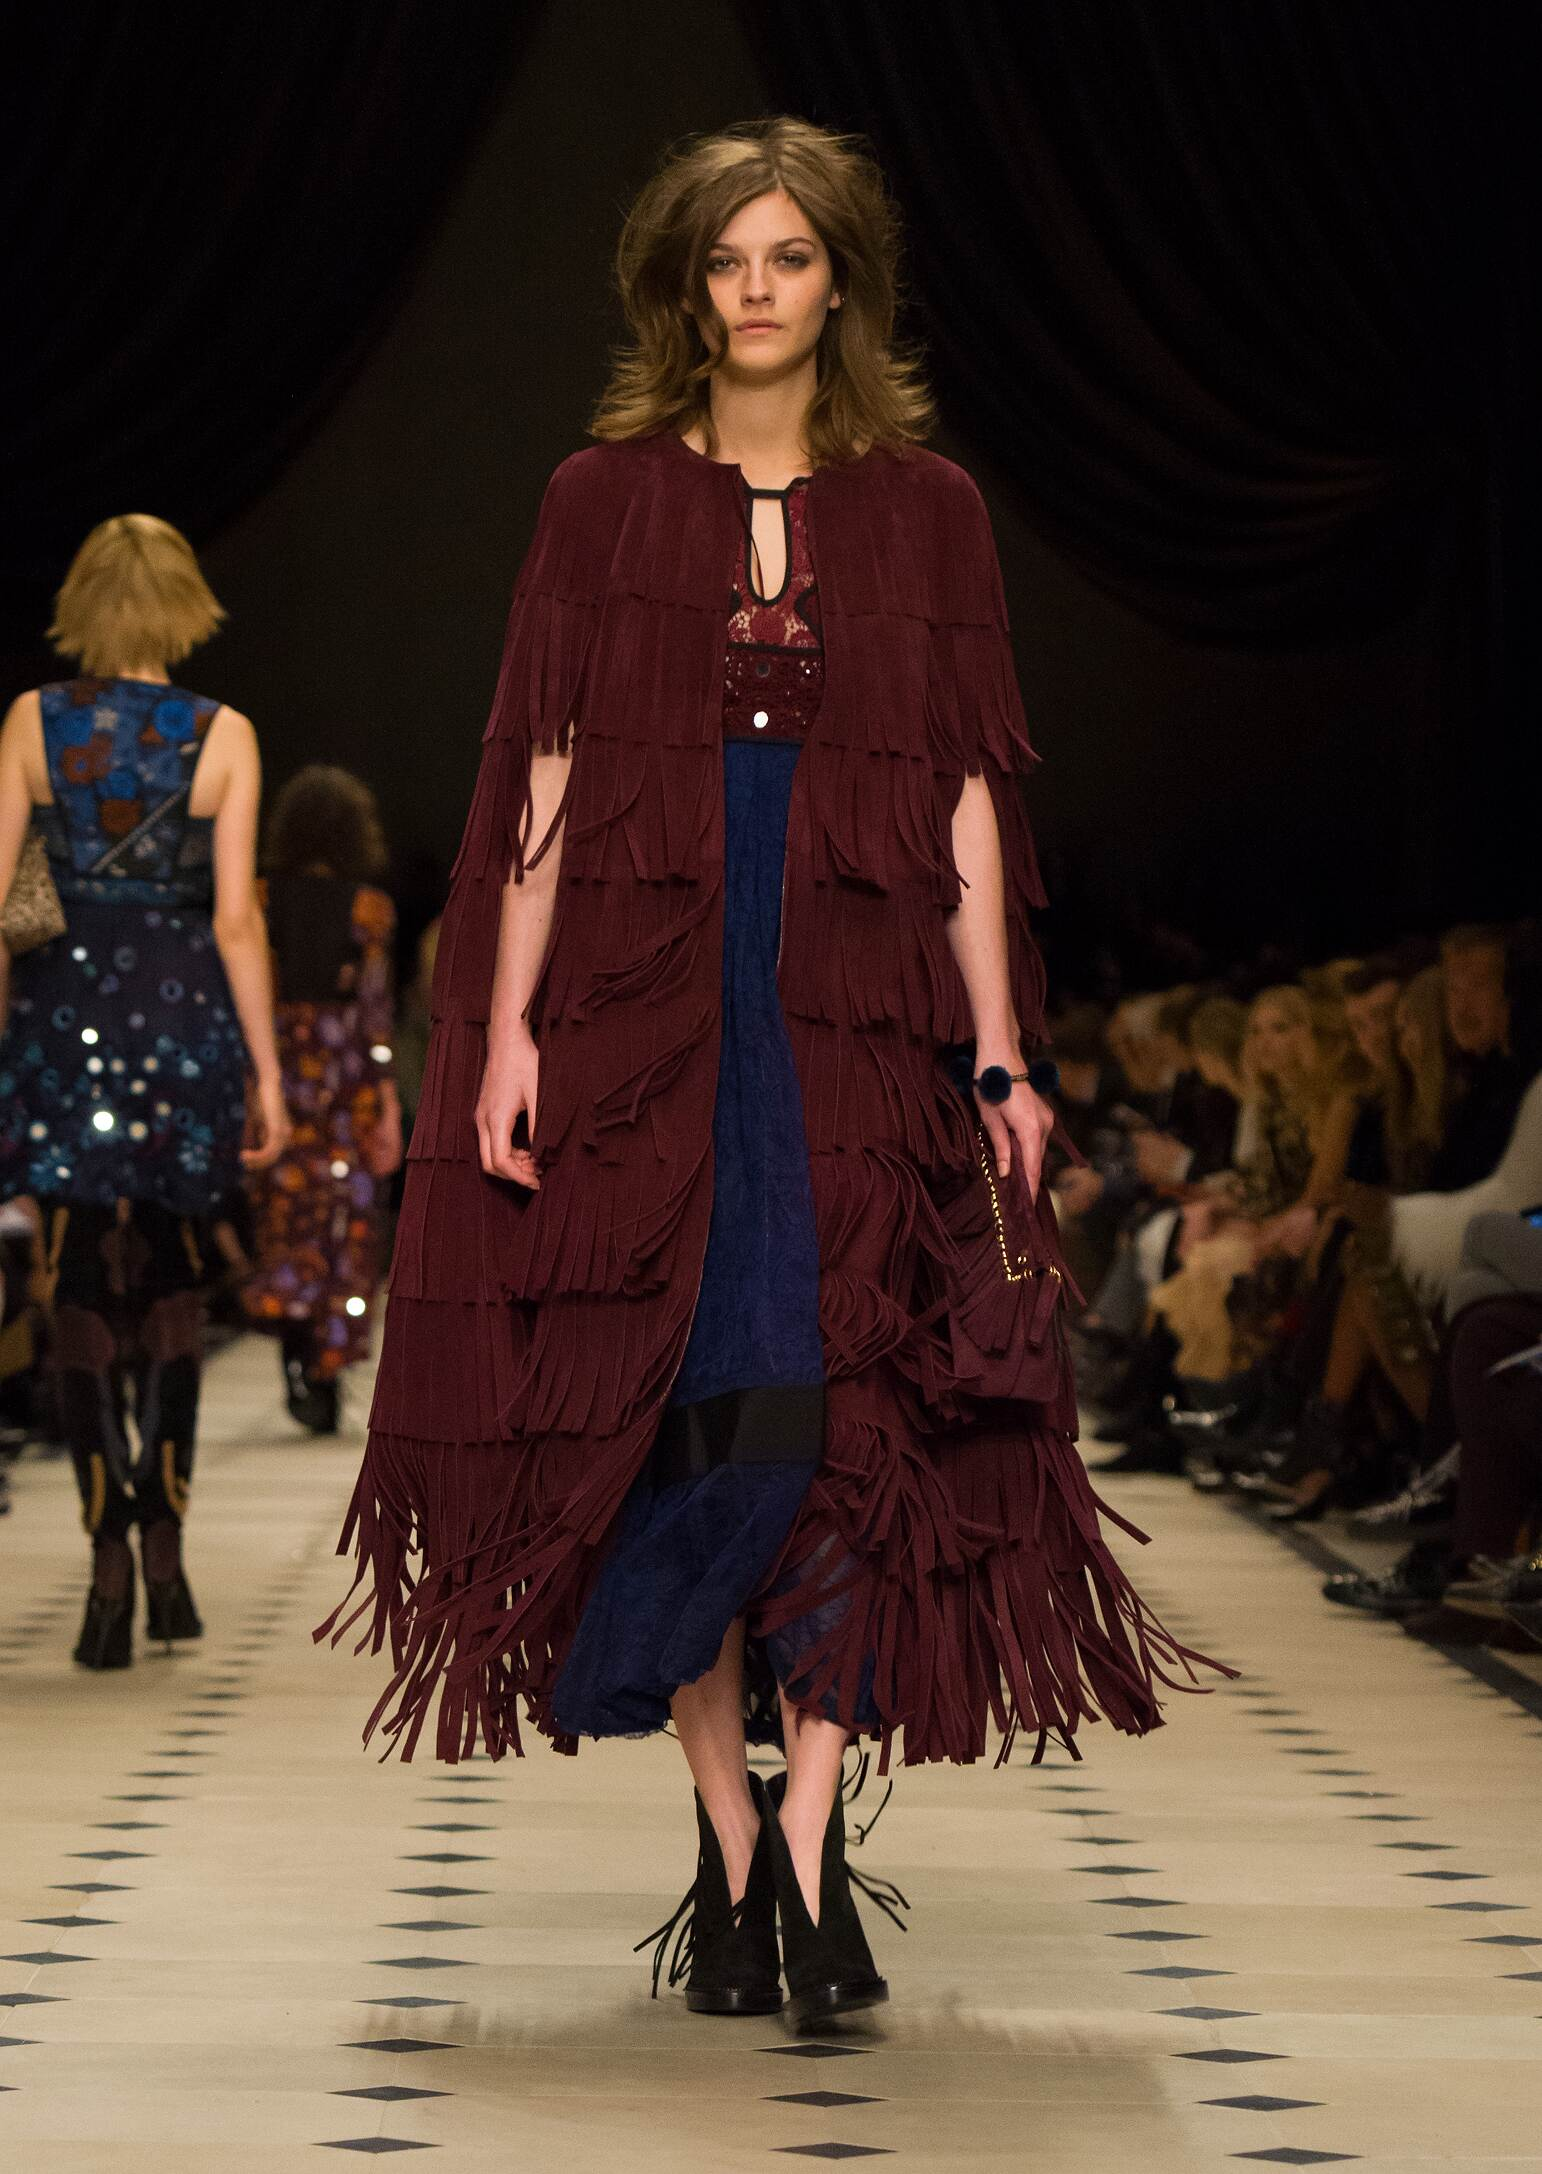 Fashion Model Burberry Prorsum Collection Catwalk